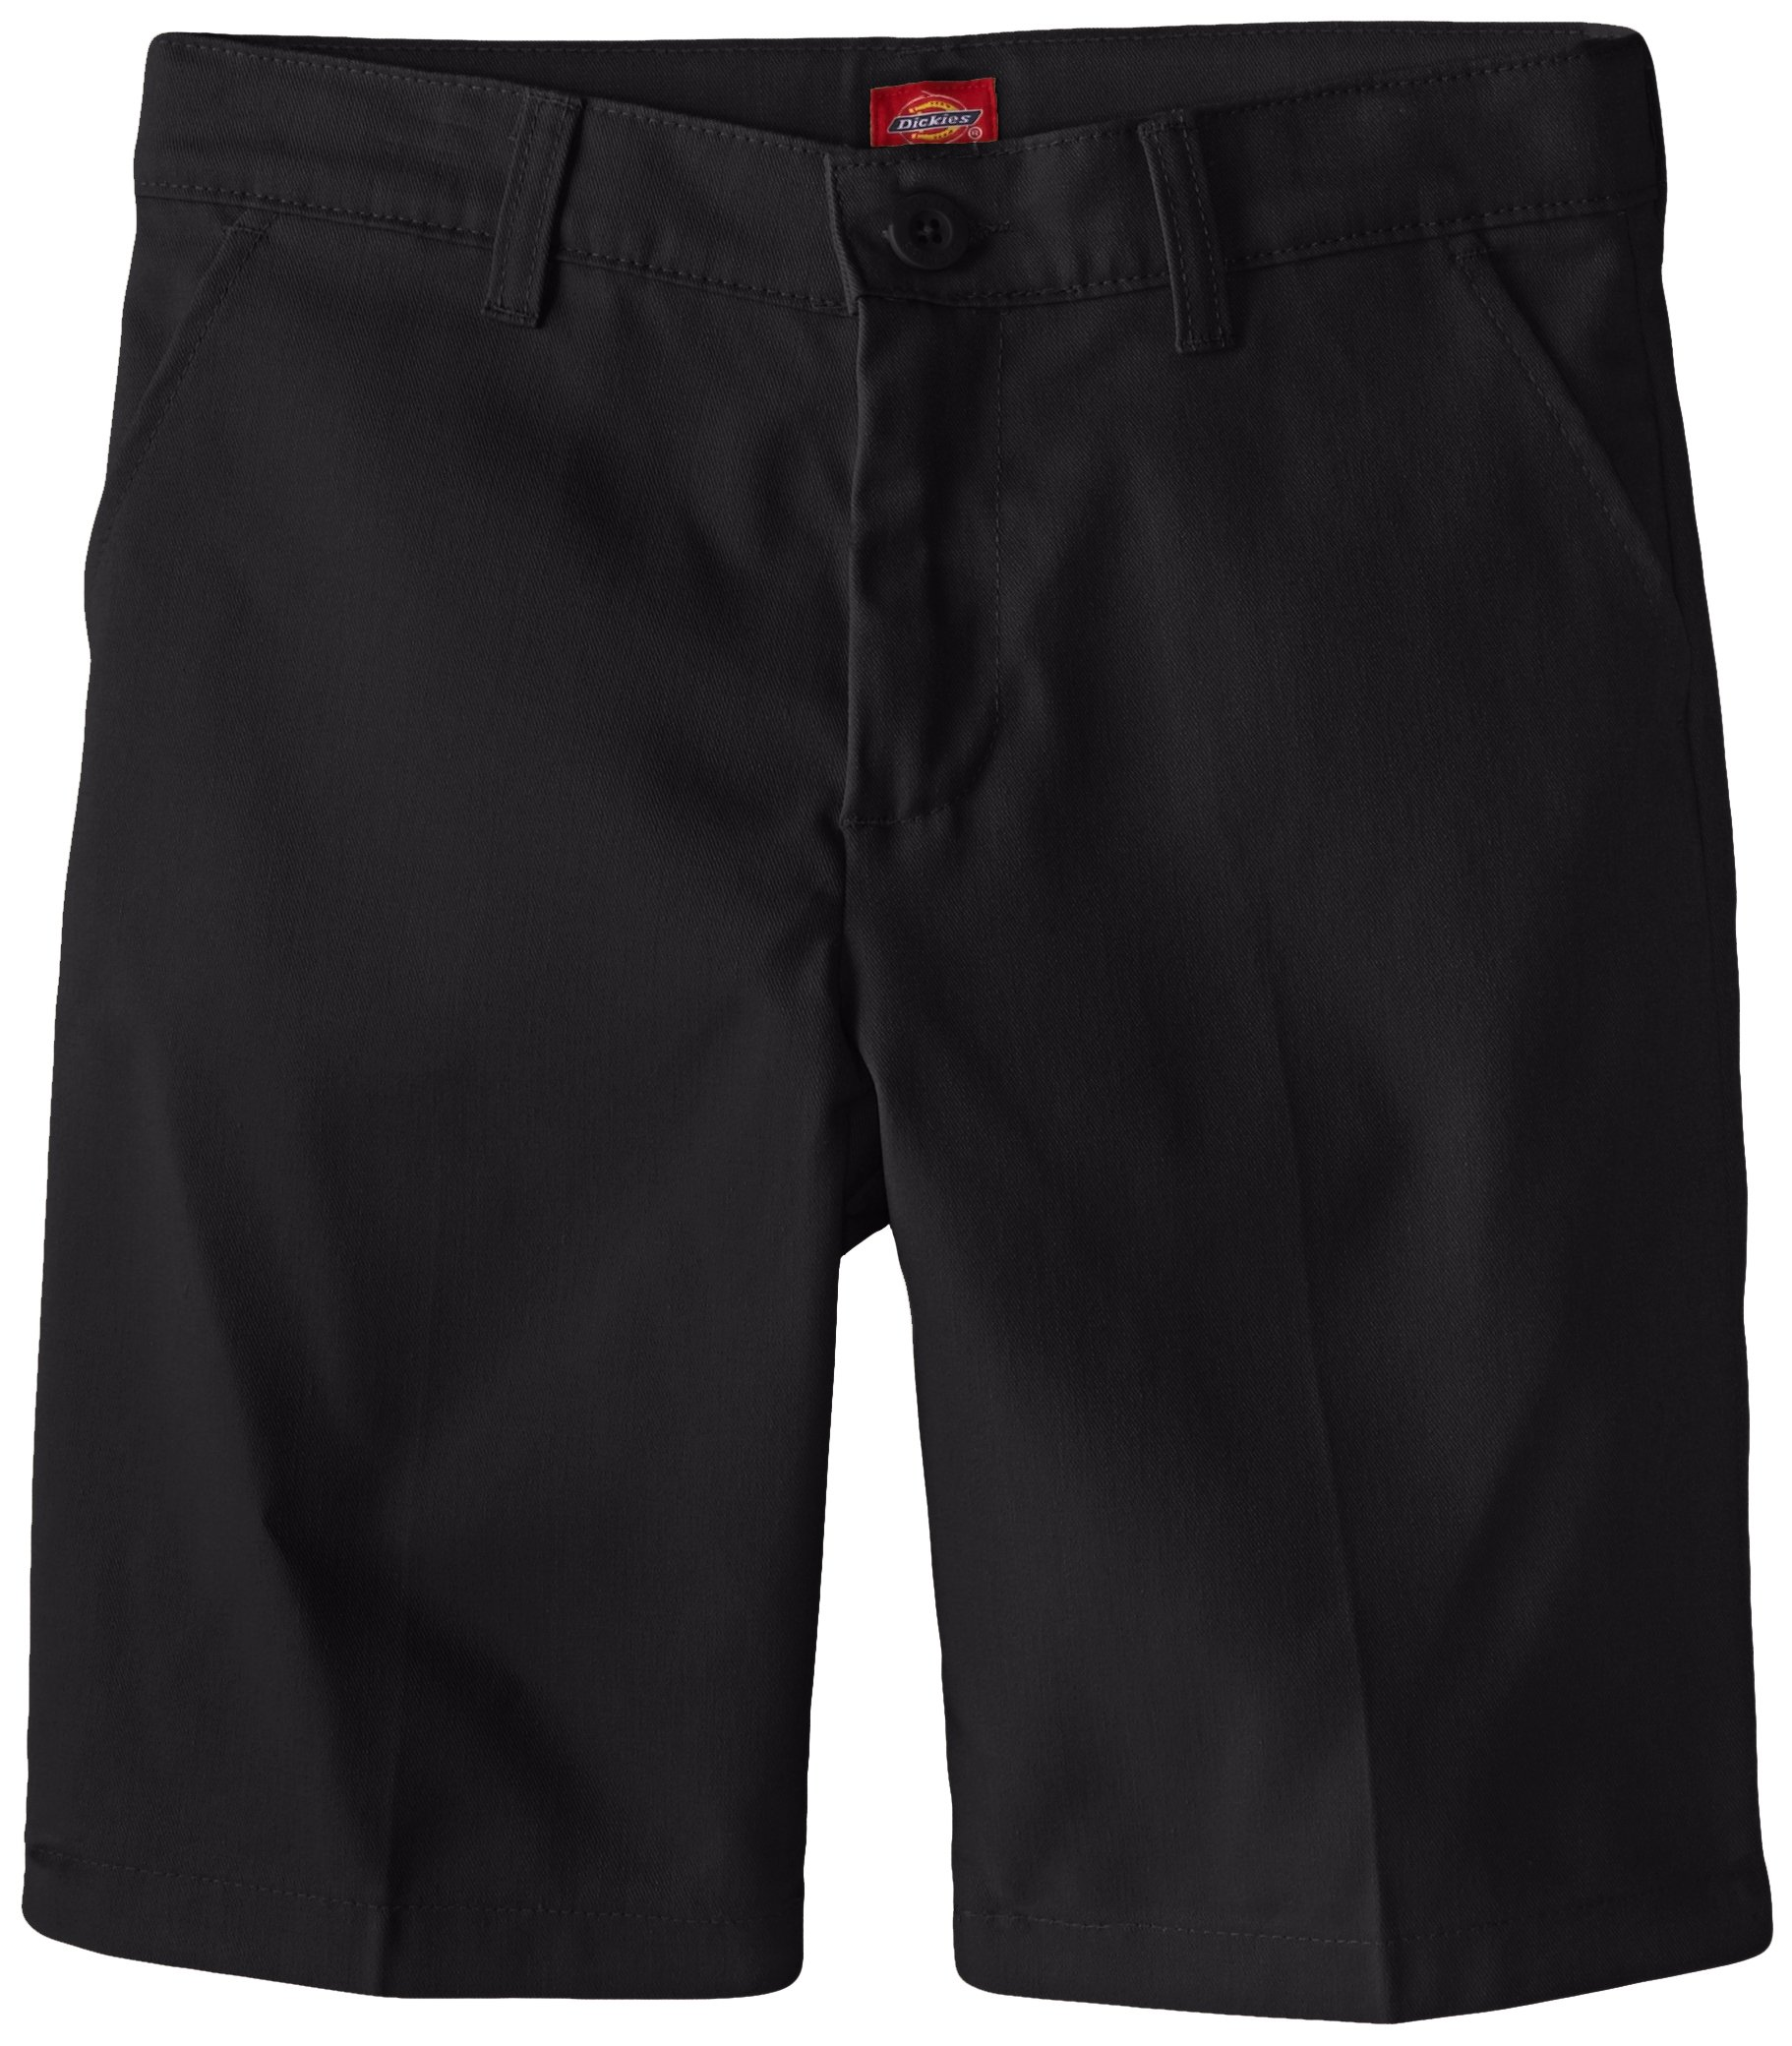 Dickies Girl Big Girls' Flex Waist Slim Fit Flat Front Short, Black, 10